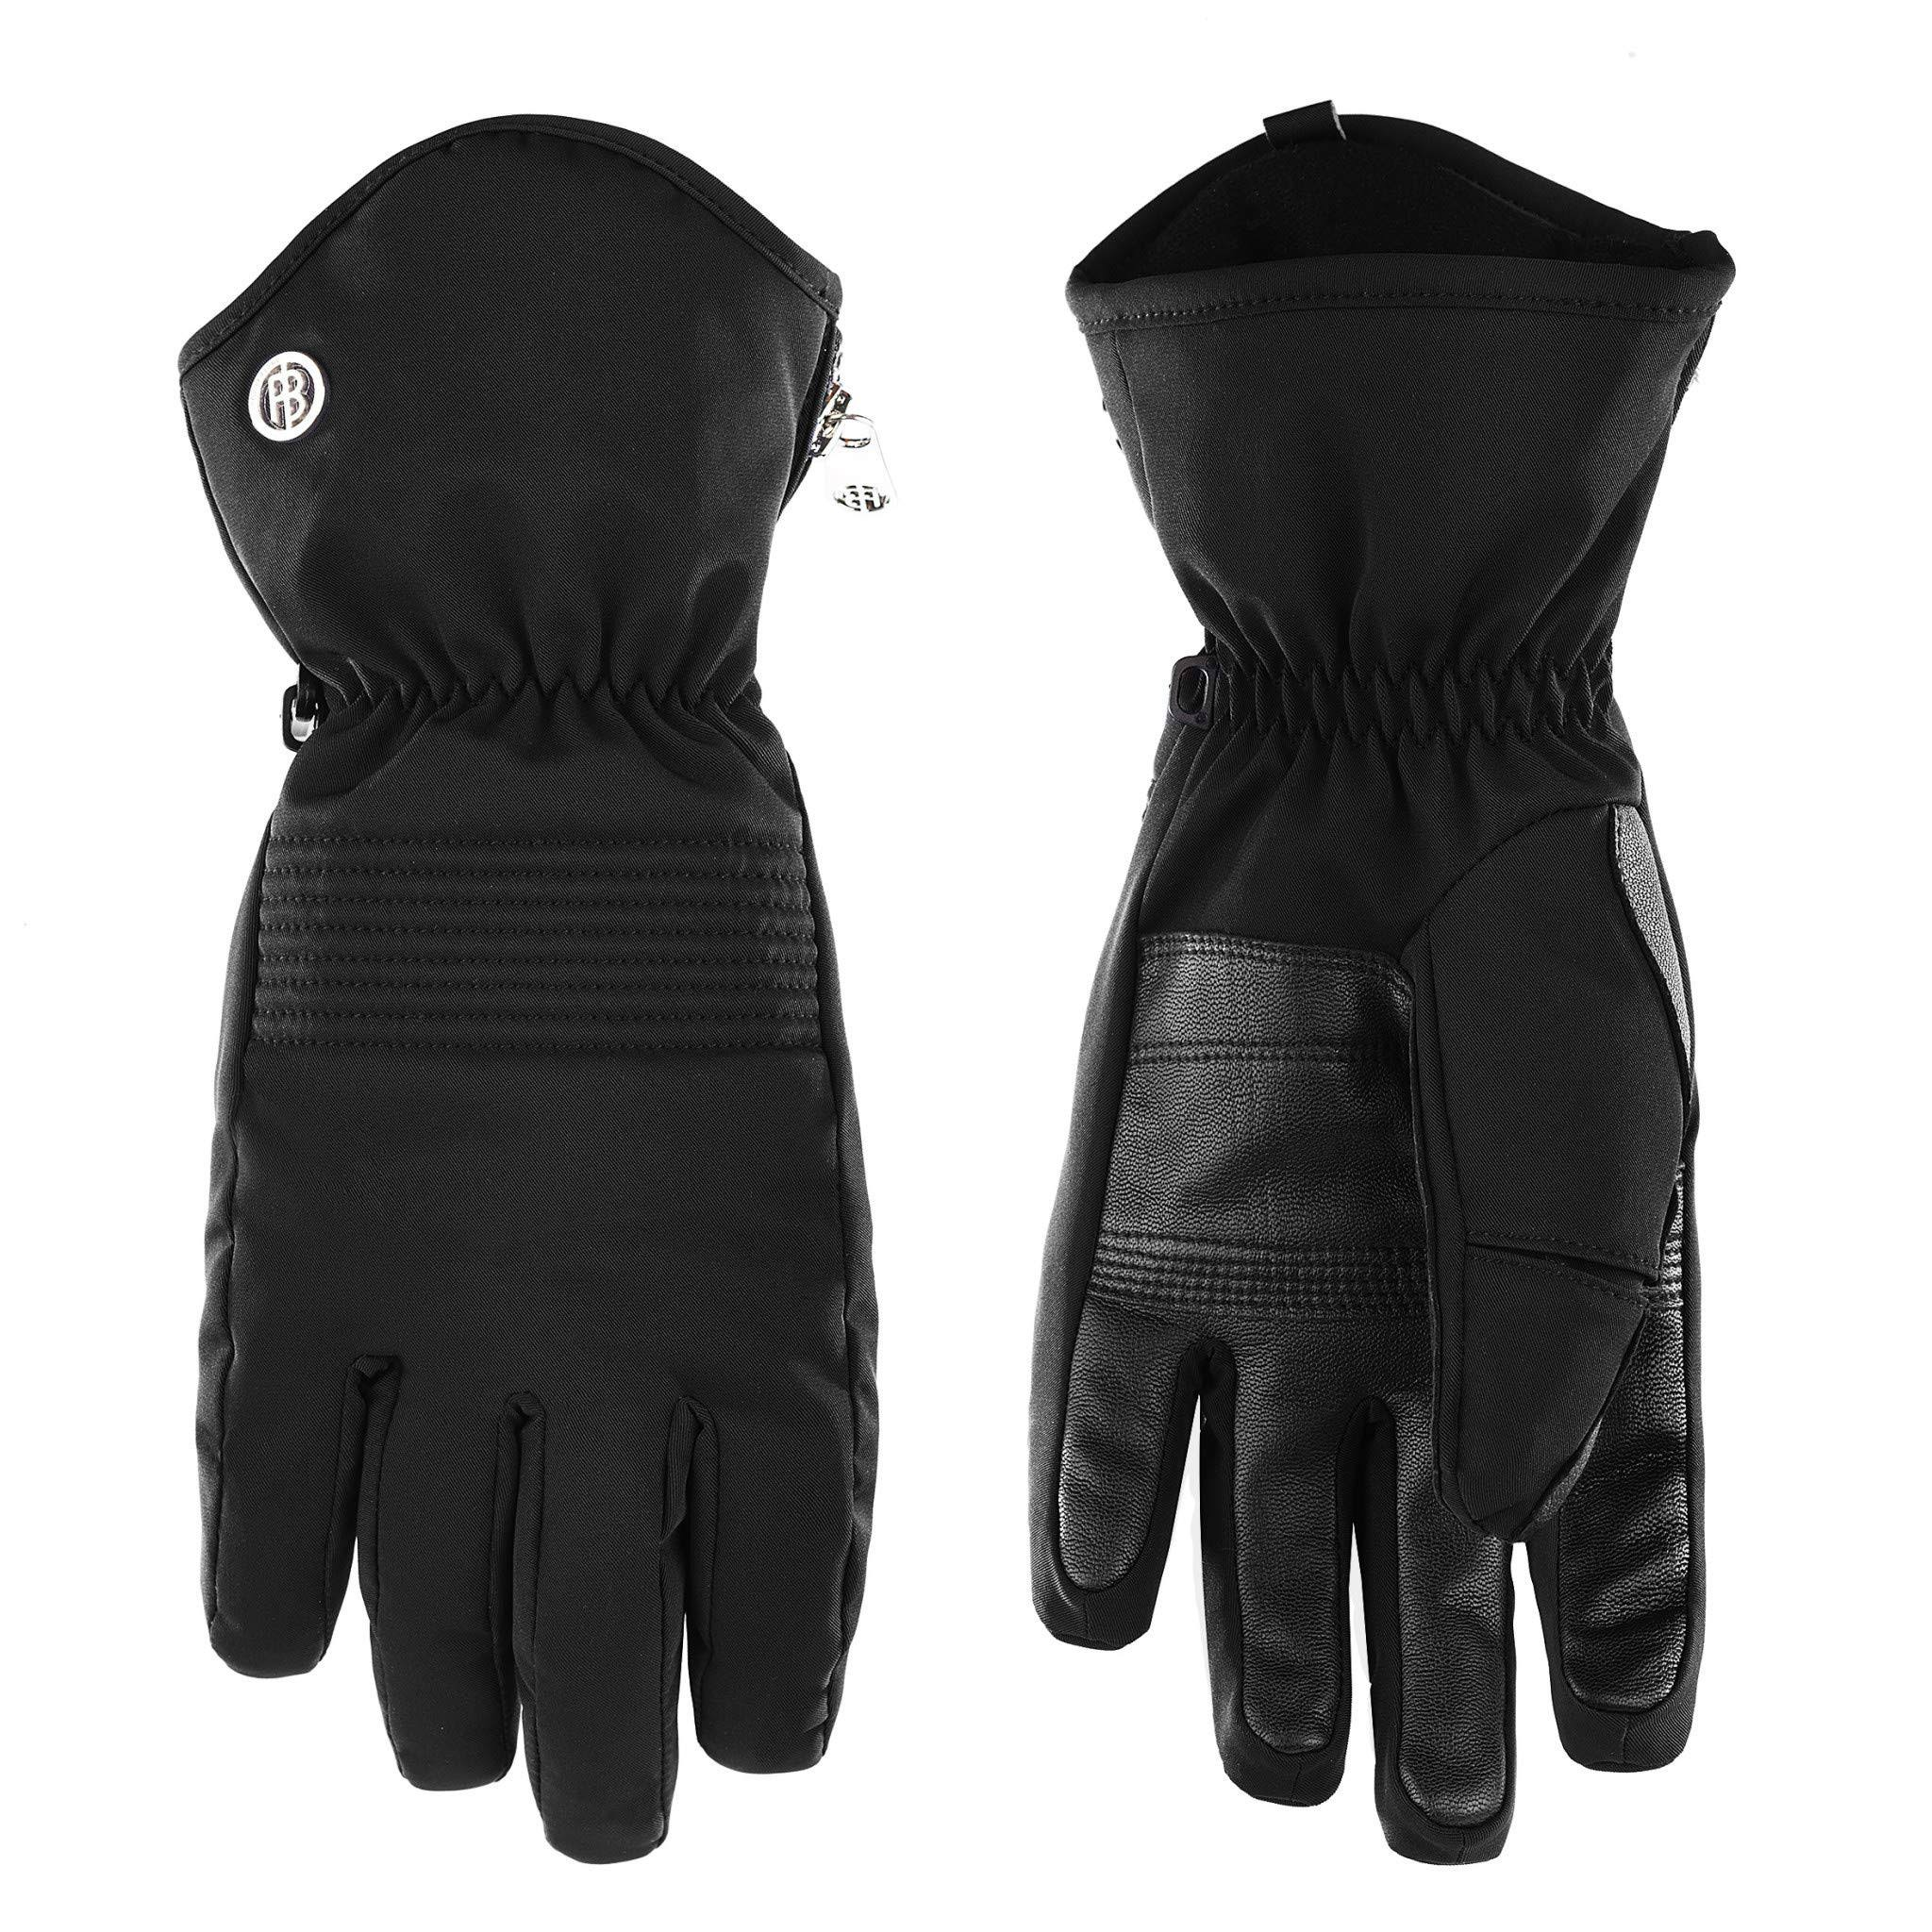 Poivre Blanc Women's Stretch Ski Gloves - M, Black